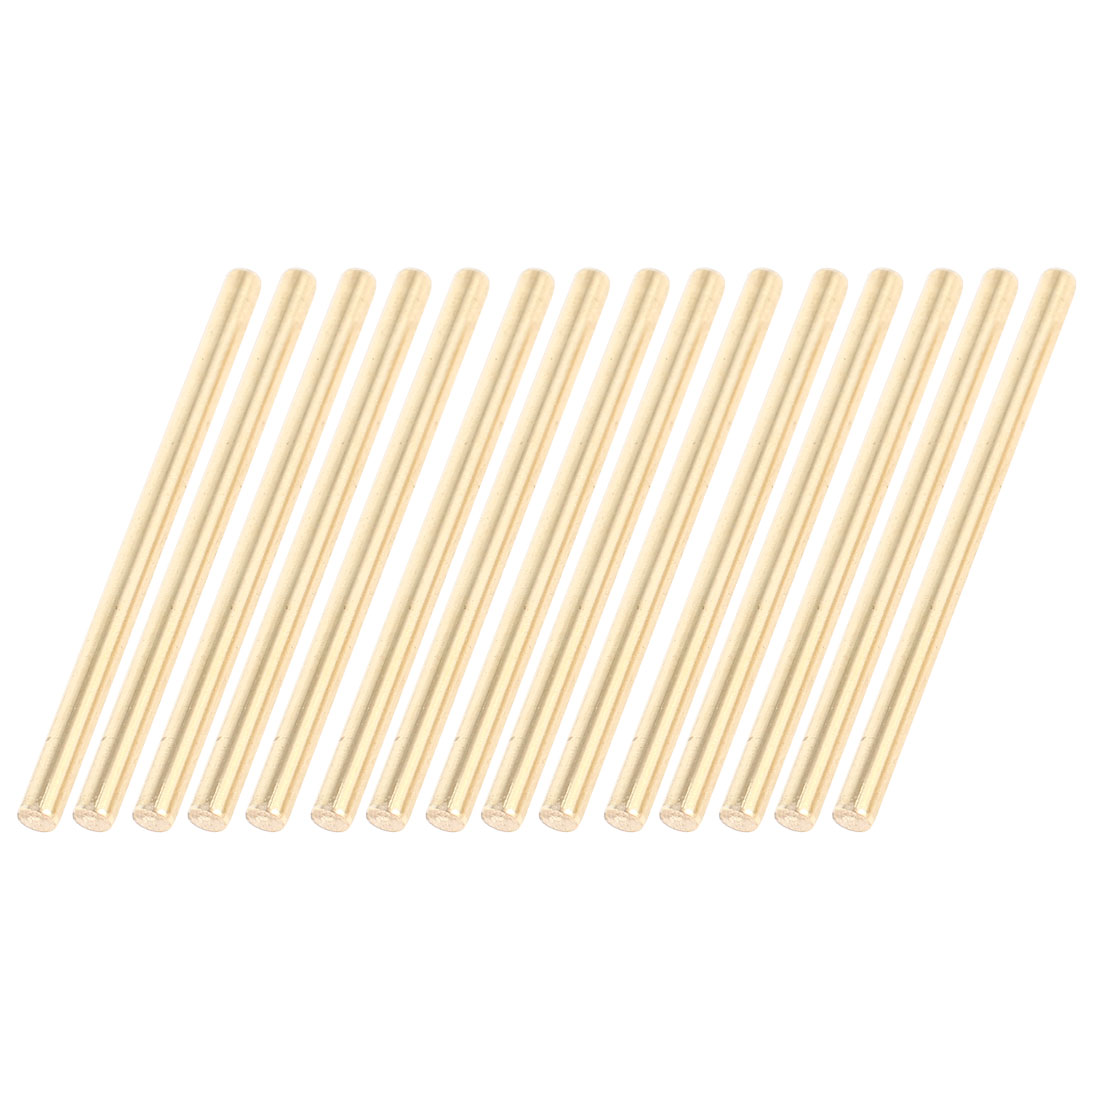 15 Pcs Car Helicopter Model Toy DIY Brass Axles Rod Bars 3mm x 50mm